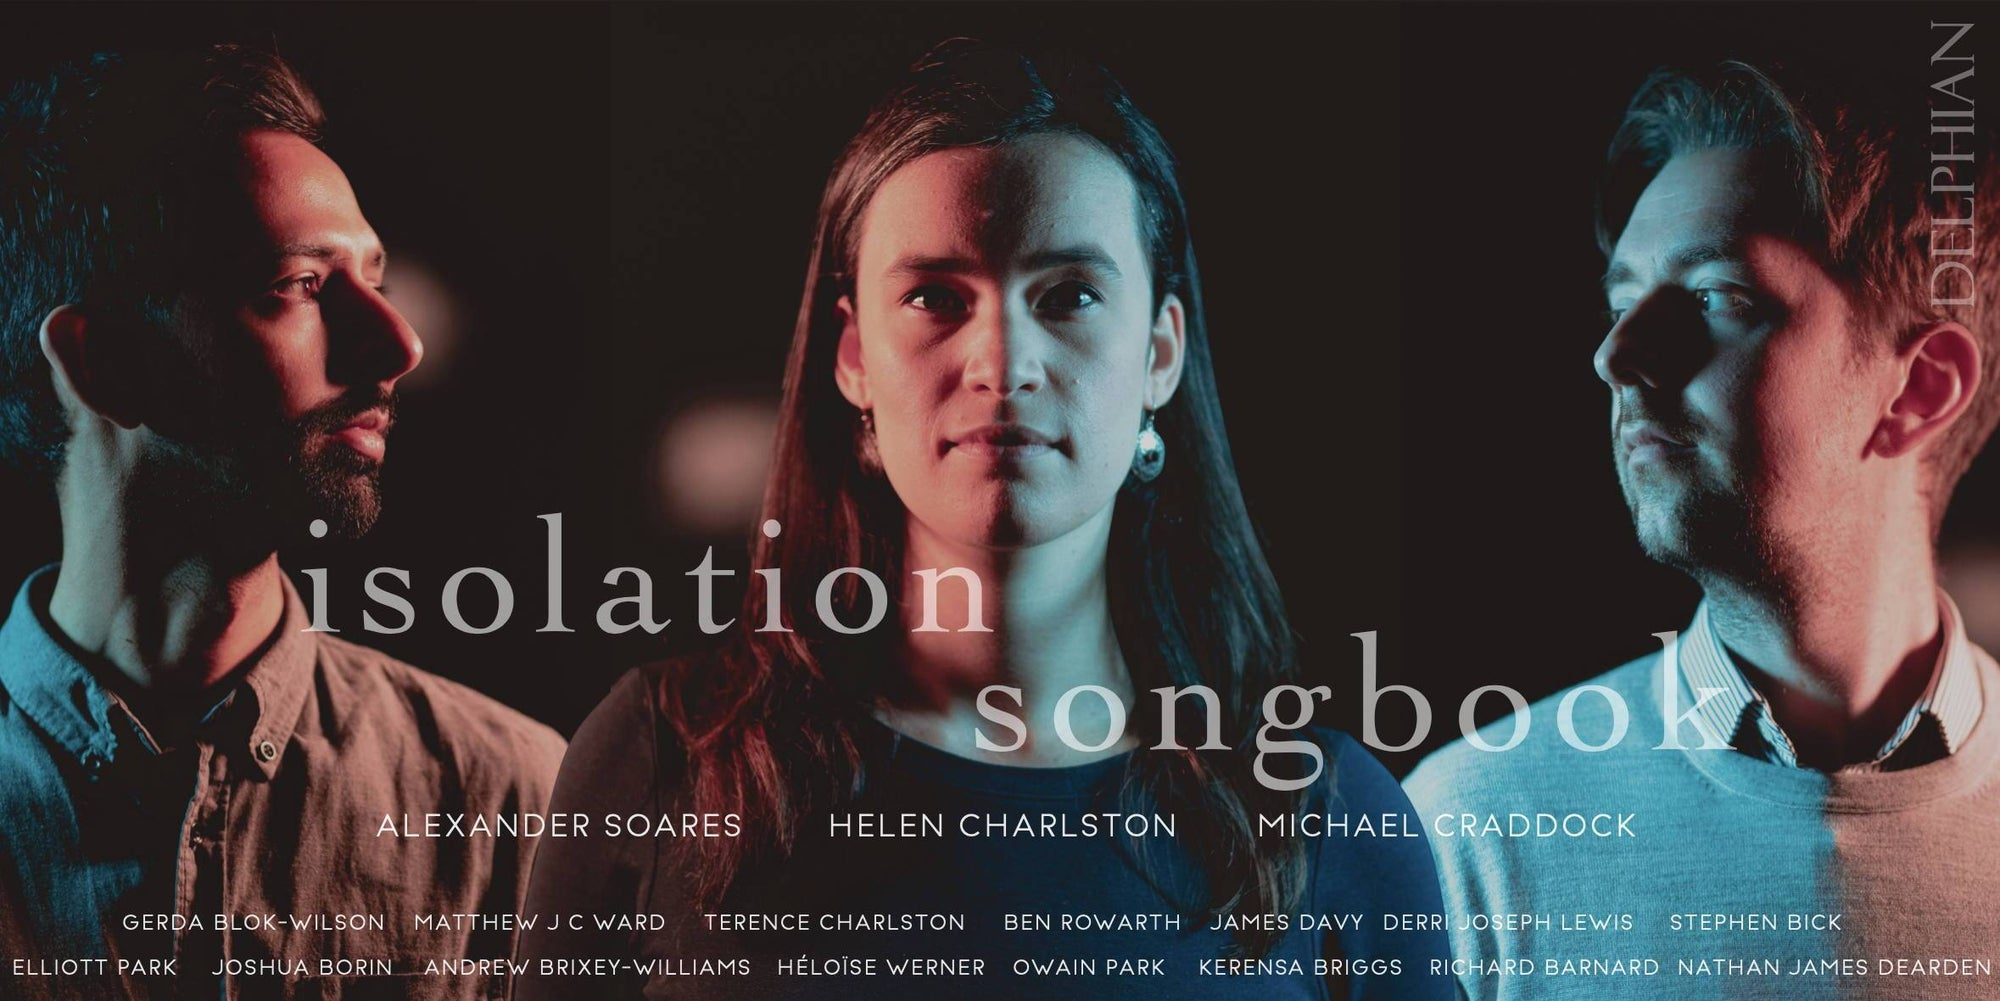 Presto Classical on Isolation Songbook